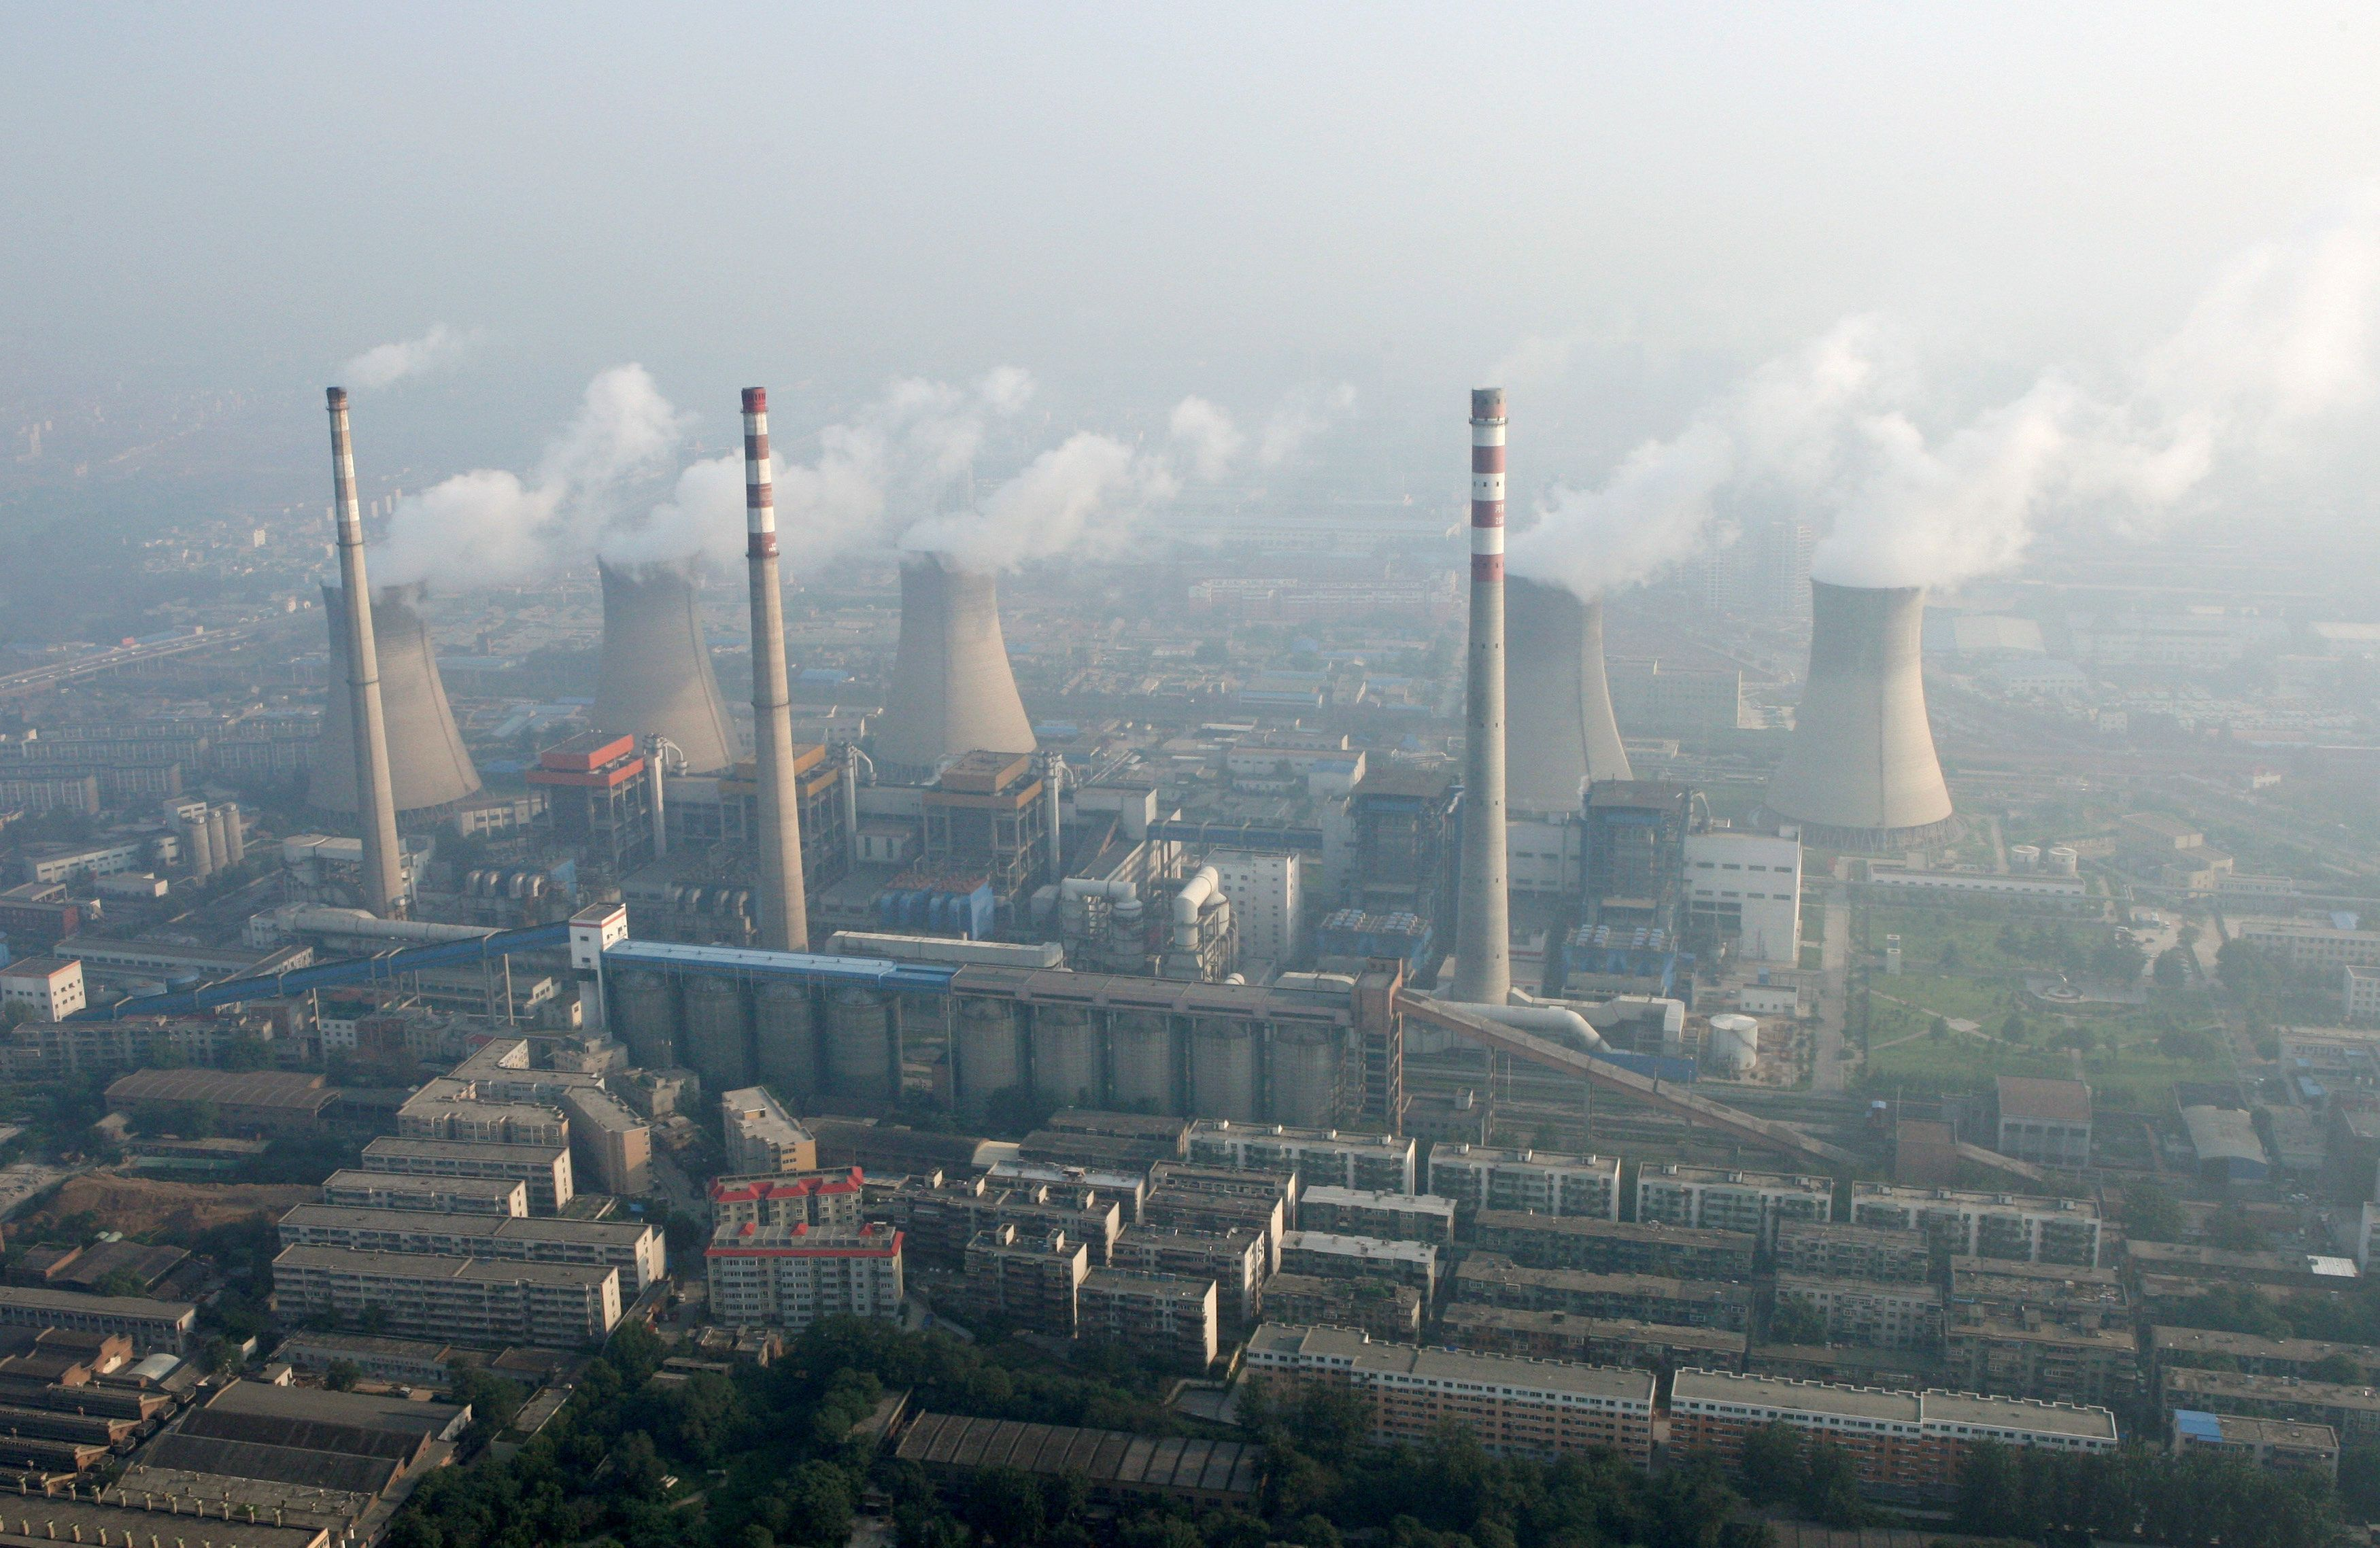 A coal-burning power plant on the outskirts of Zhengzhou, Henan province, China, pictured in 2010.